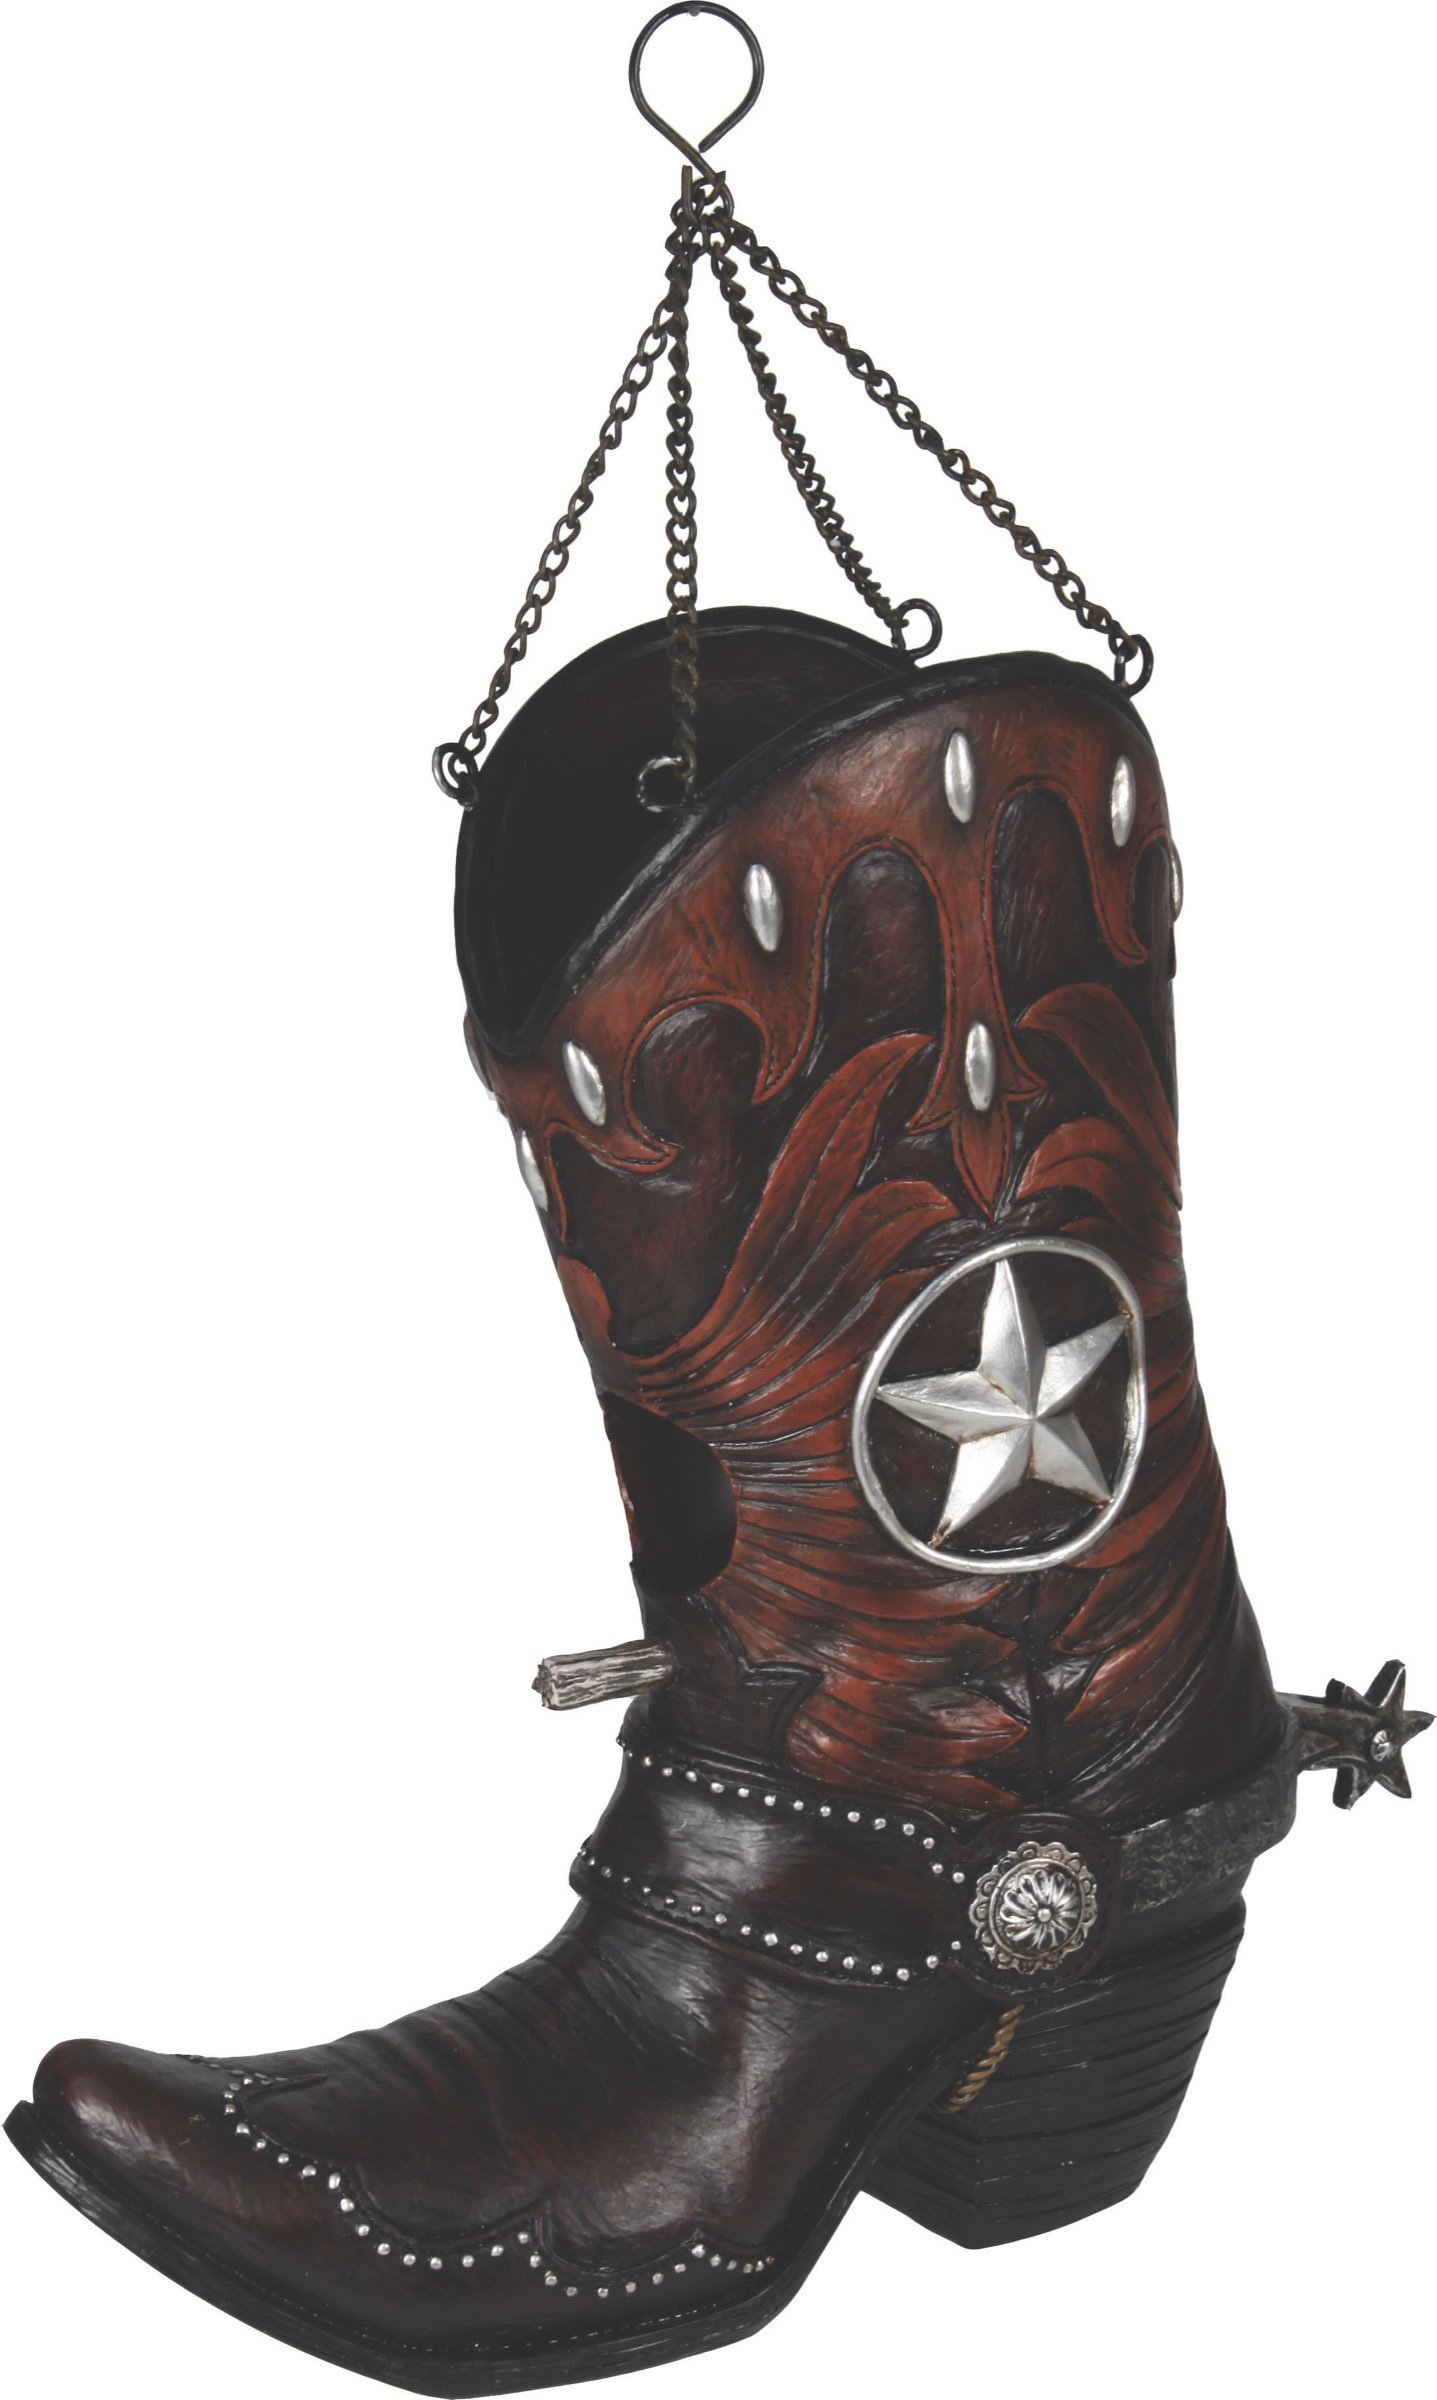 River's Edge Products Cowboy Boot Birdhouse